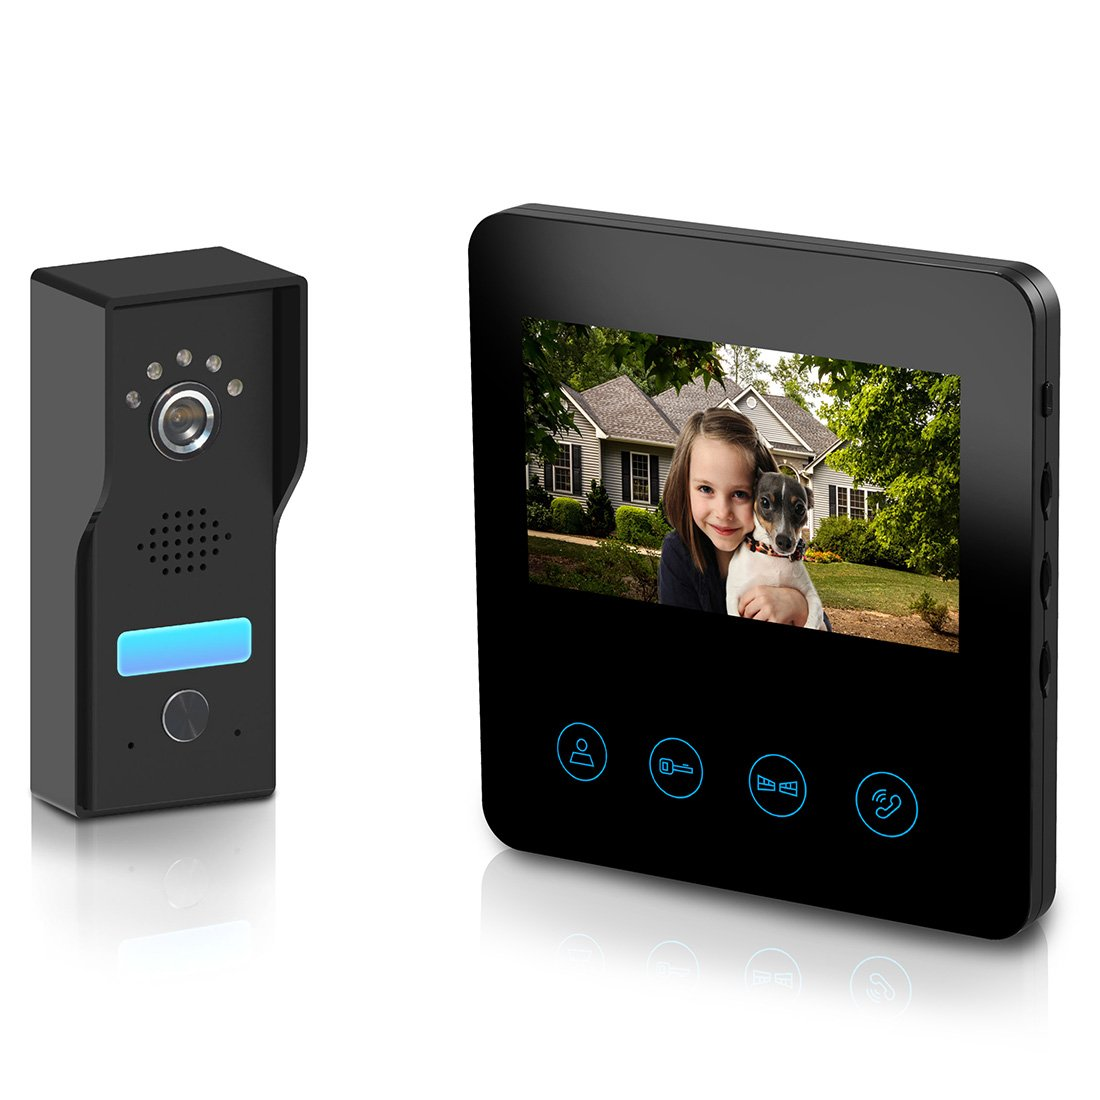 Video Doorbell with 4.3inch Monitor - Video Door Phone Intercom Kit 4-wires unlock function 1-Metal camera 1-monitor Night Vision Touch Button Screen - No Wi-Fi & APP (black)